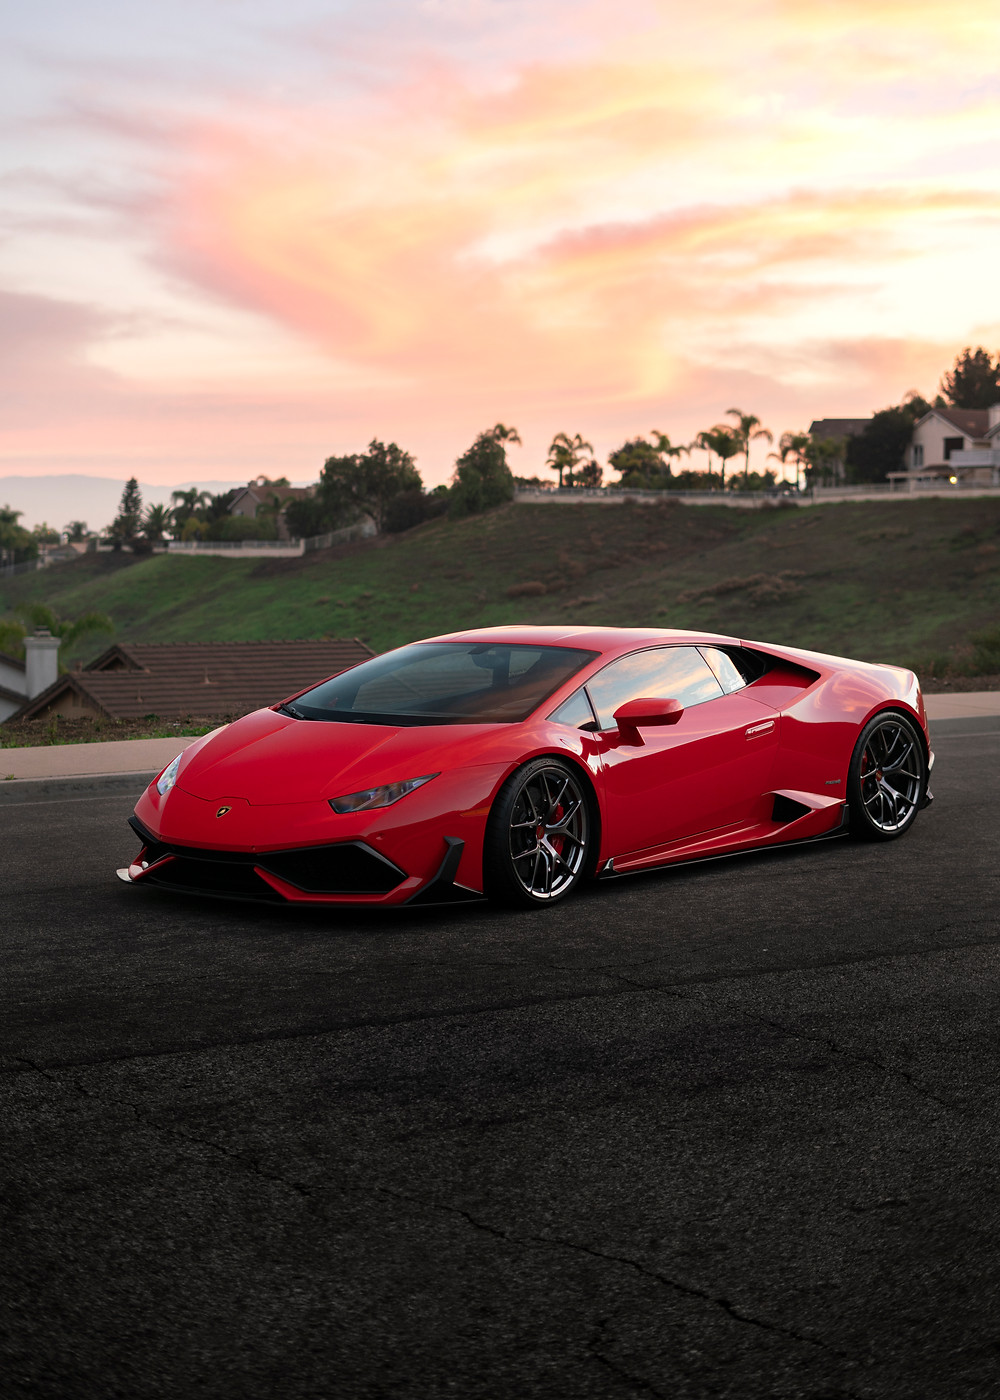 rosso lamborghini huracan with bbs f1r wheels lowered on novitec springs and future design full carbon fiber body aero kit